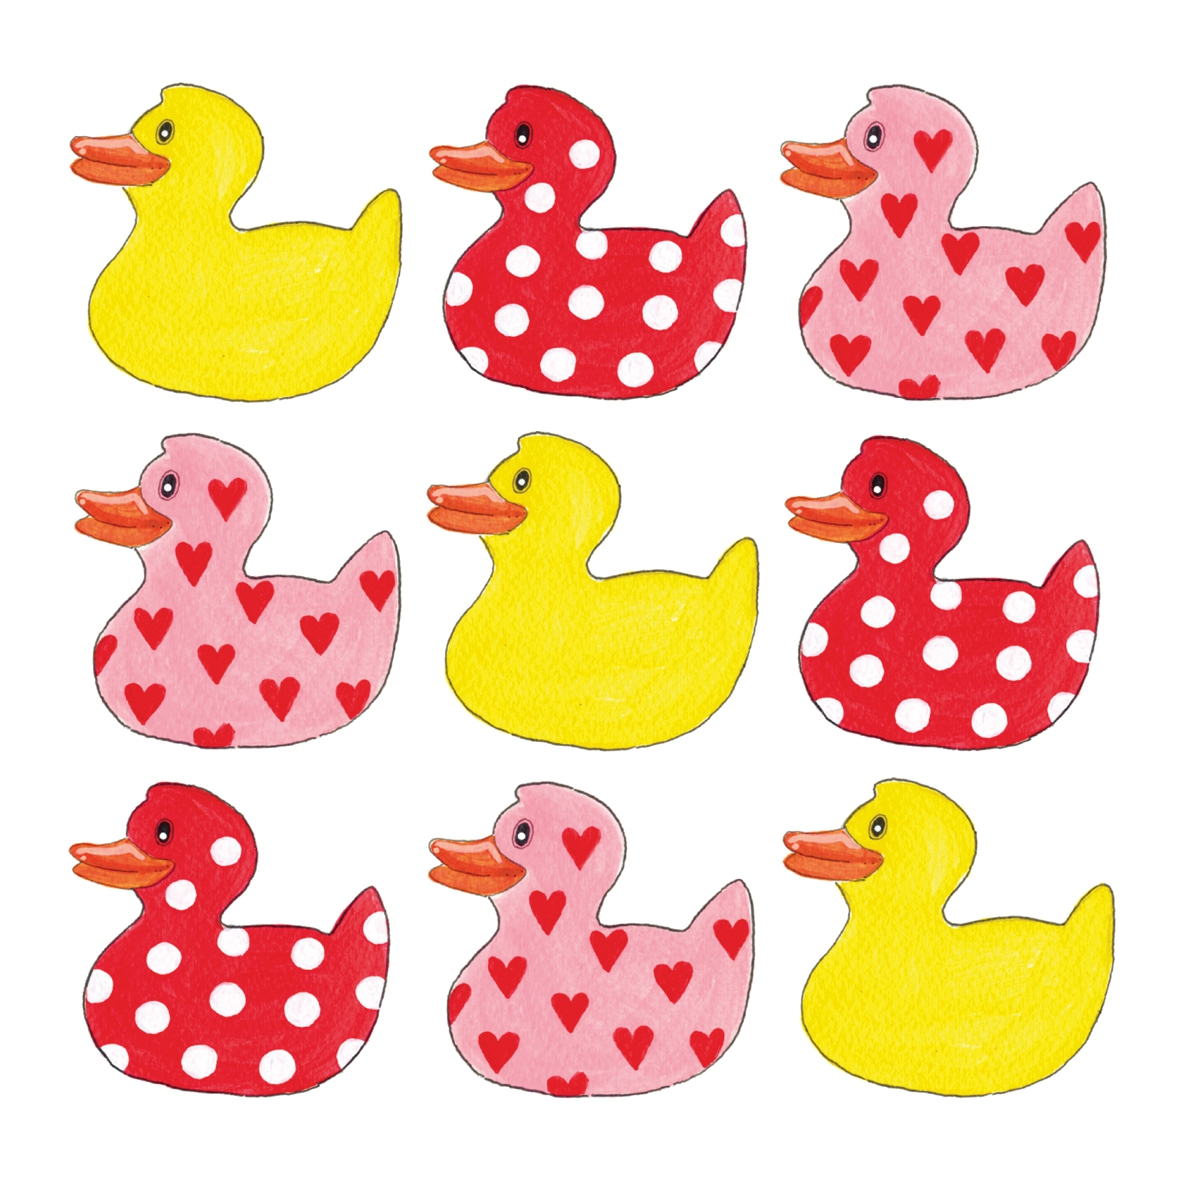 Paperproducts Design,  Tiere -  Sonstige,  Everyday,  lunchservietten,  Enten